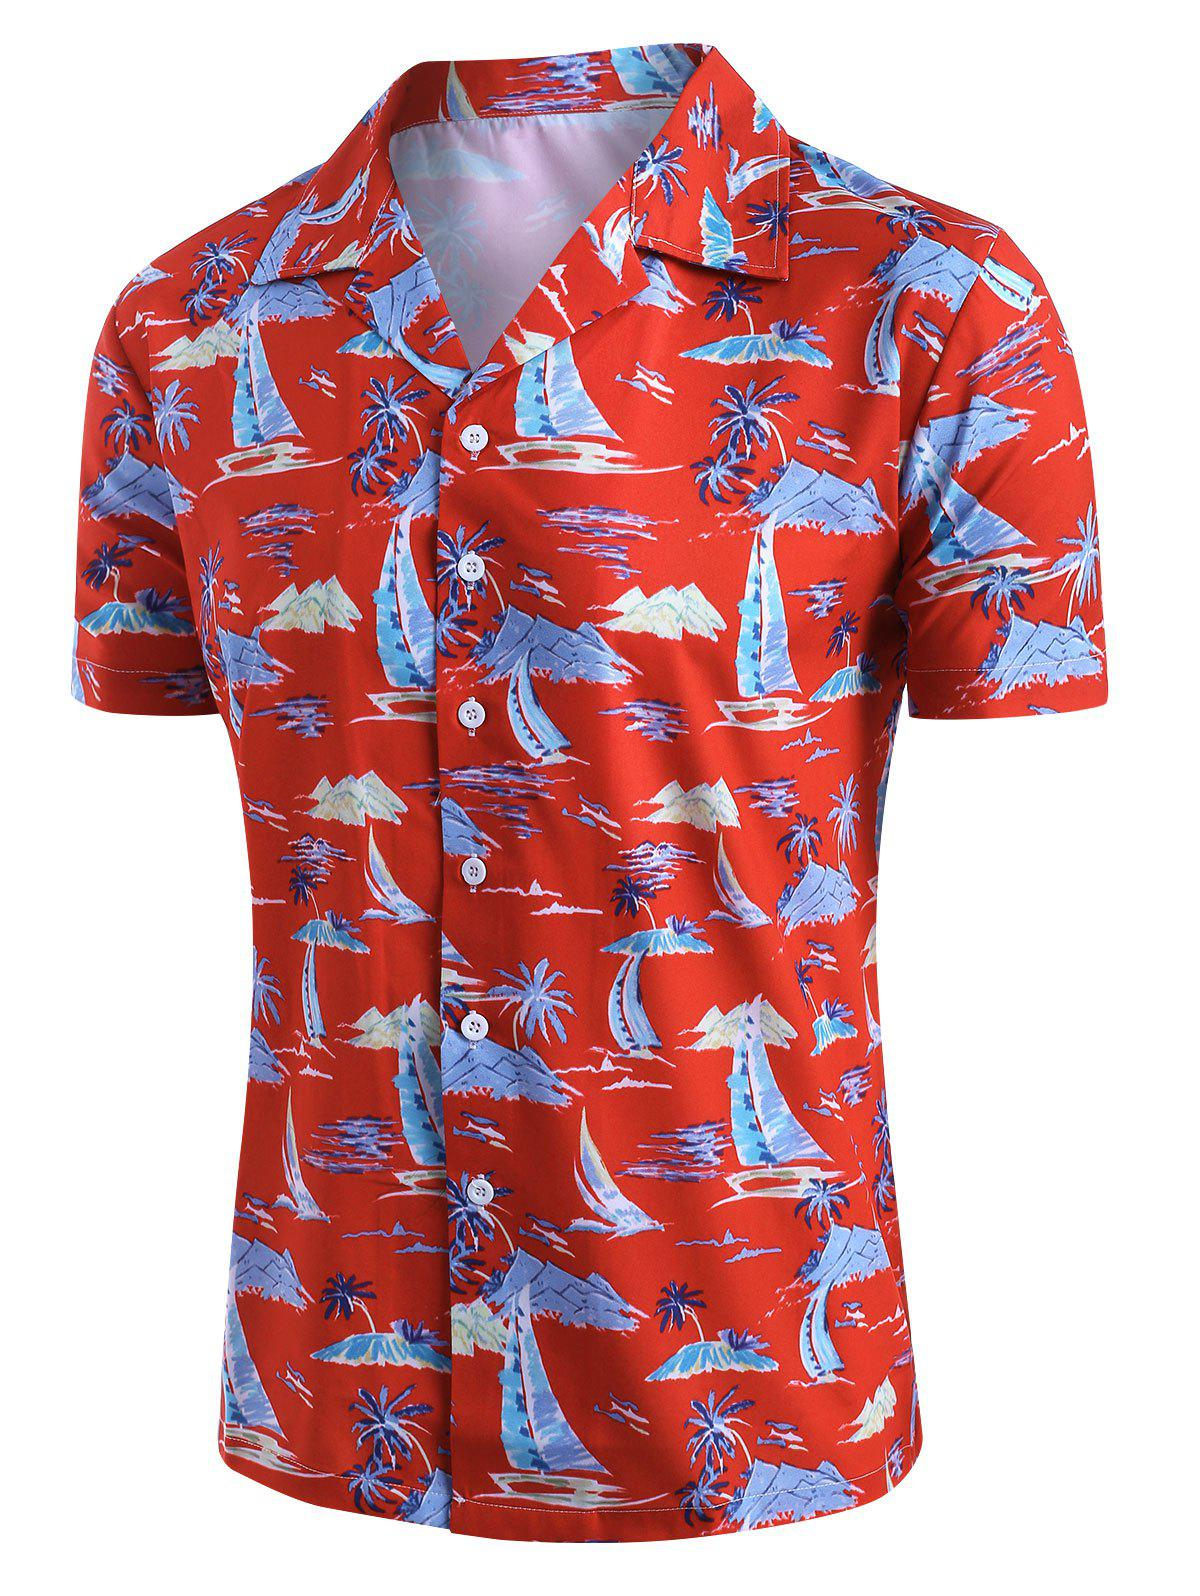 Shop Palm Tree Sailboat Print Button Up Hawaii Shirt